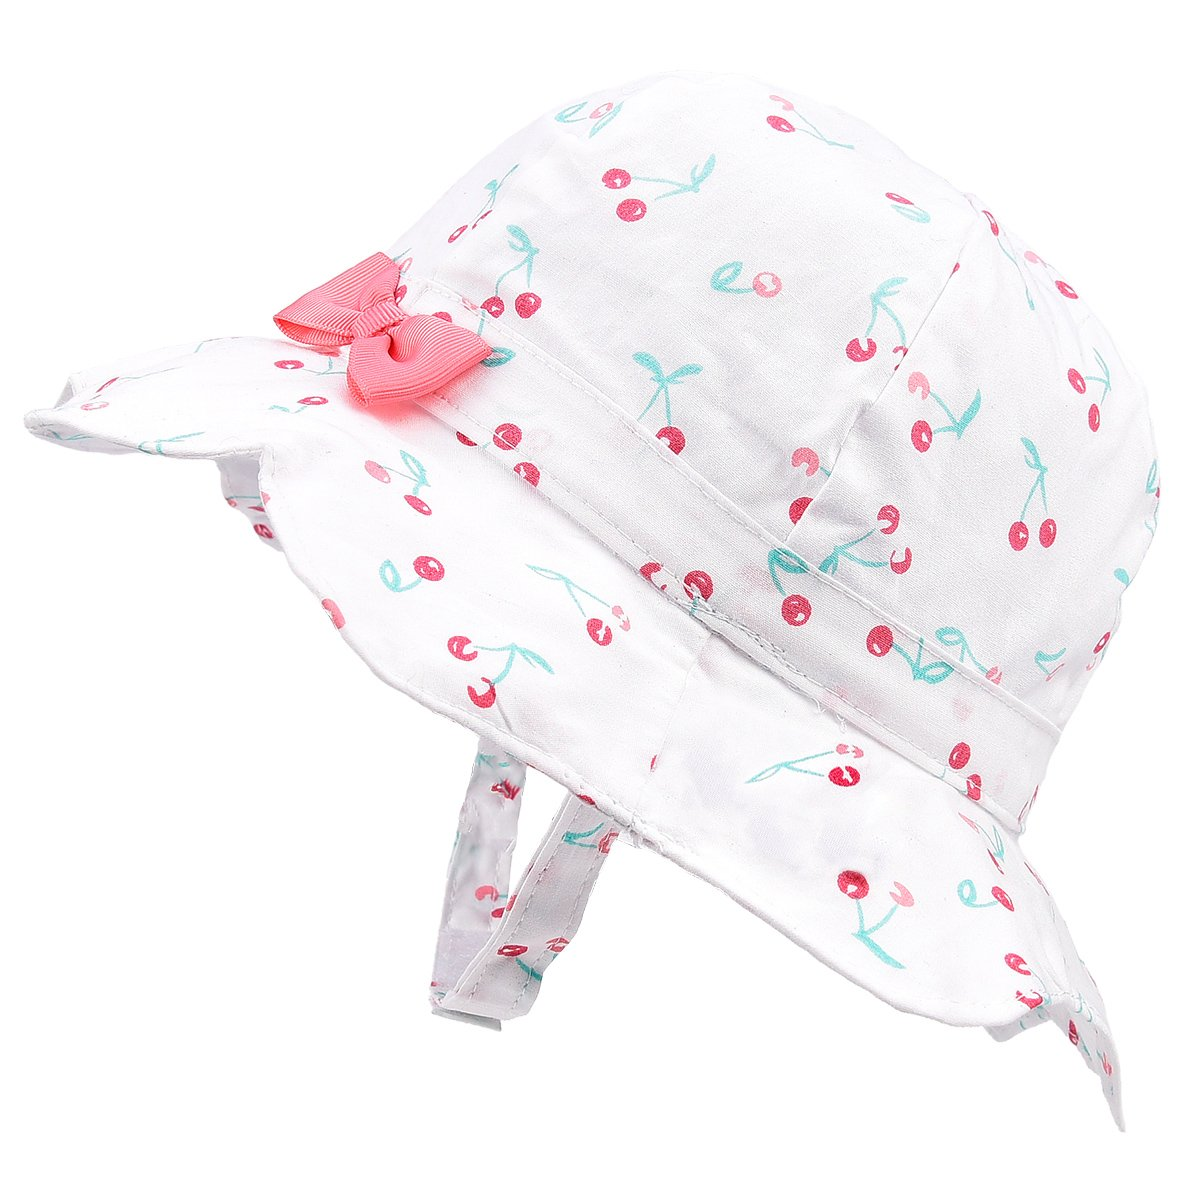 Toddler Baby Girls Sun Hats for Summer Sun Protection Beach Hat for Kids 0M-6T